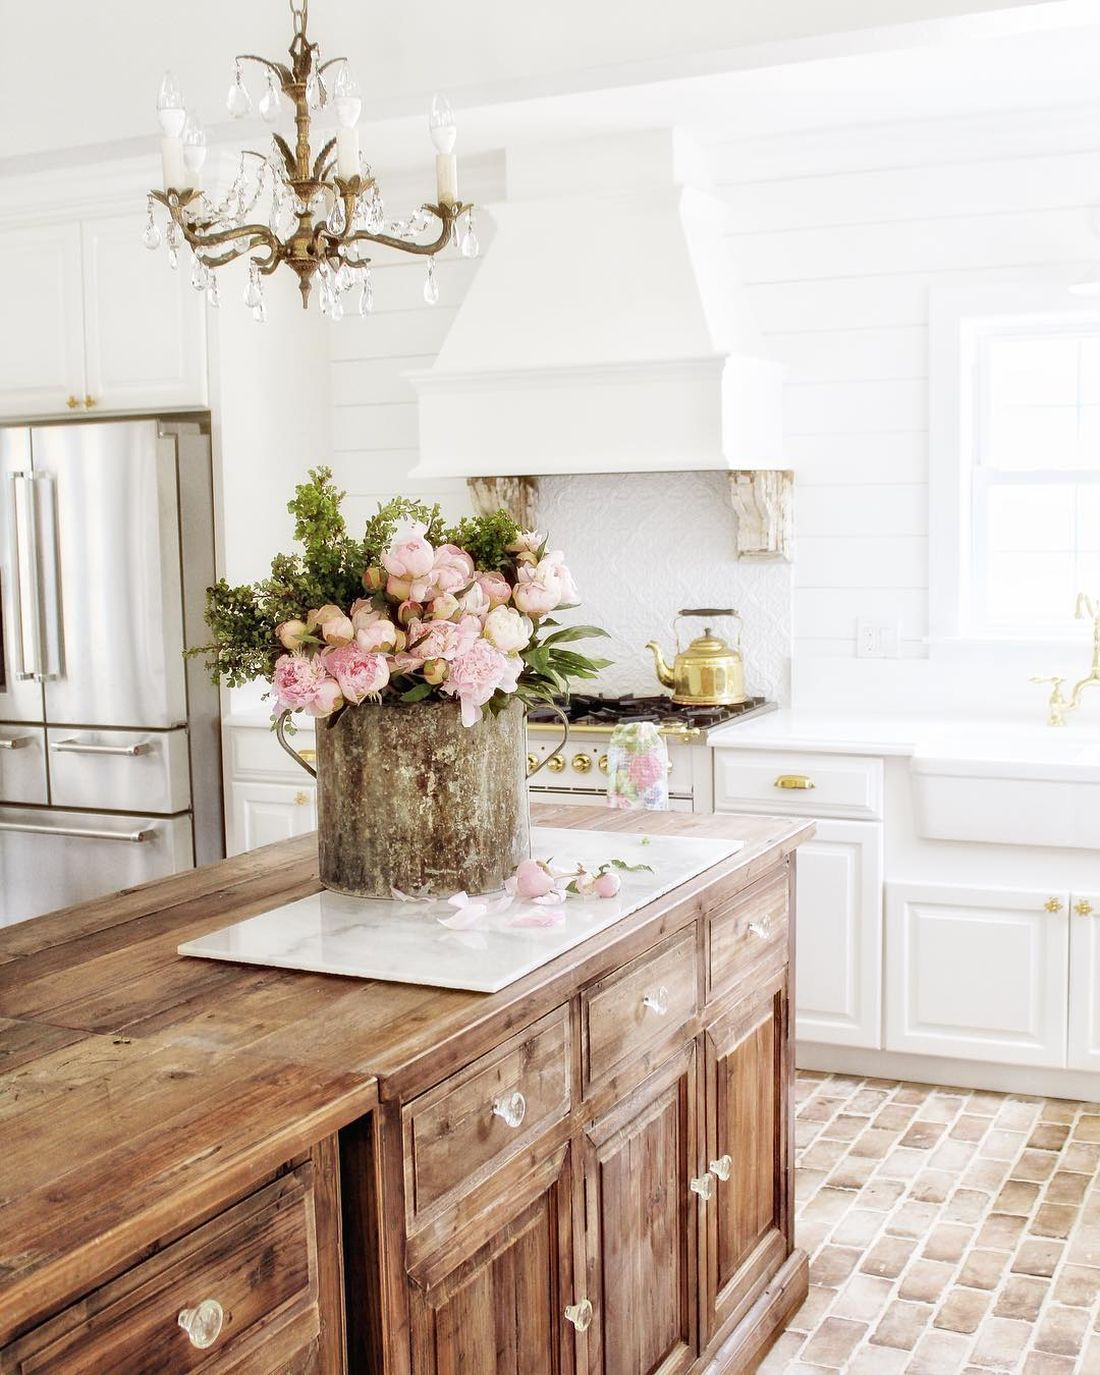 French Country Flooring : french, country, flooring, Gorgeous, French, Country, Kitchens